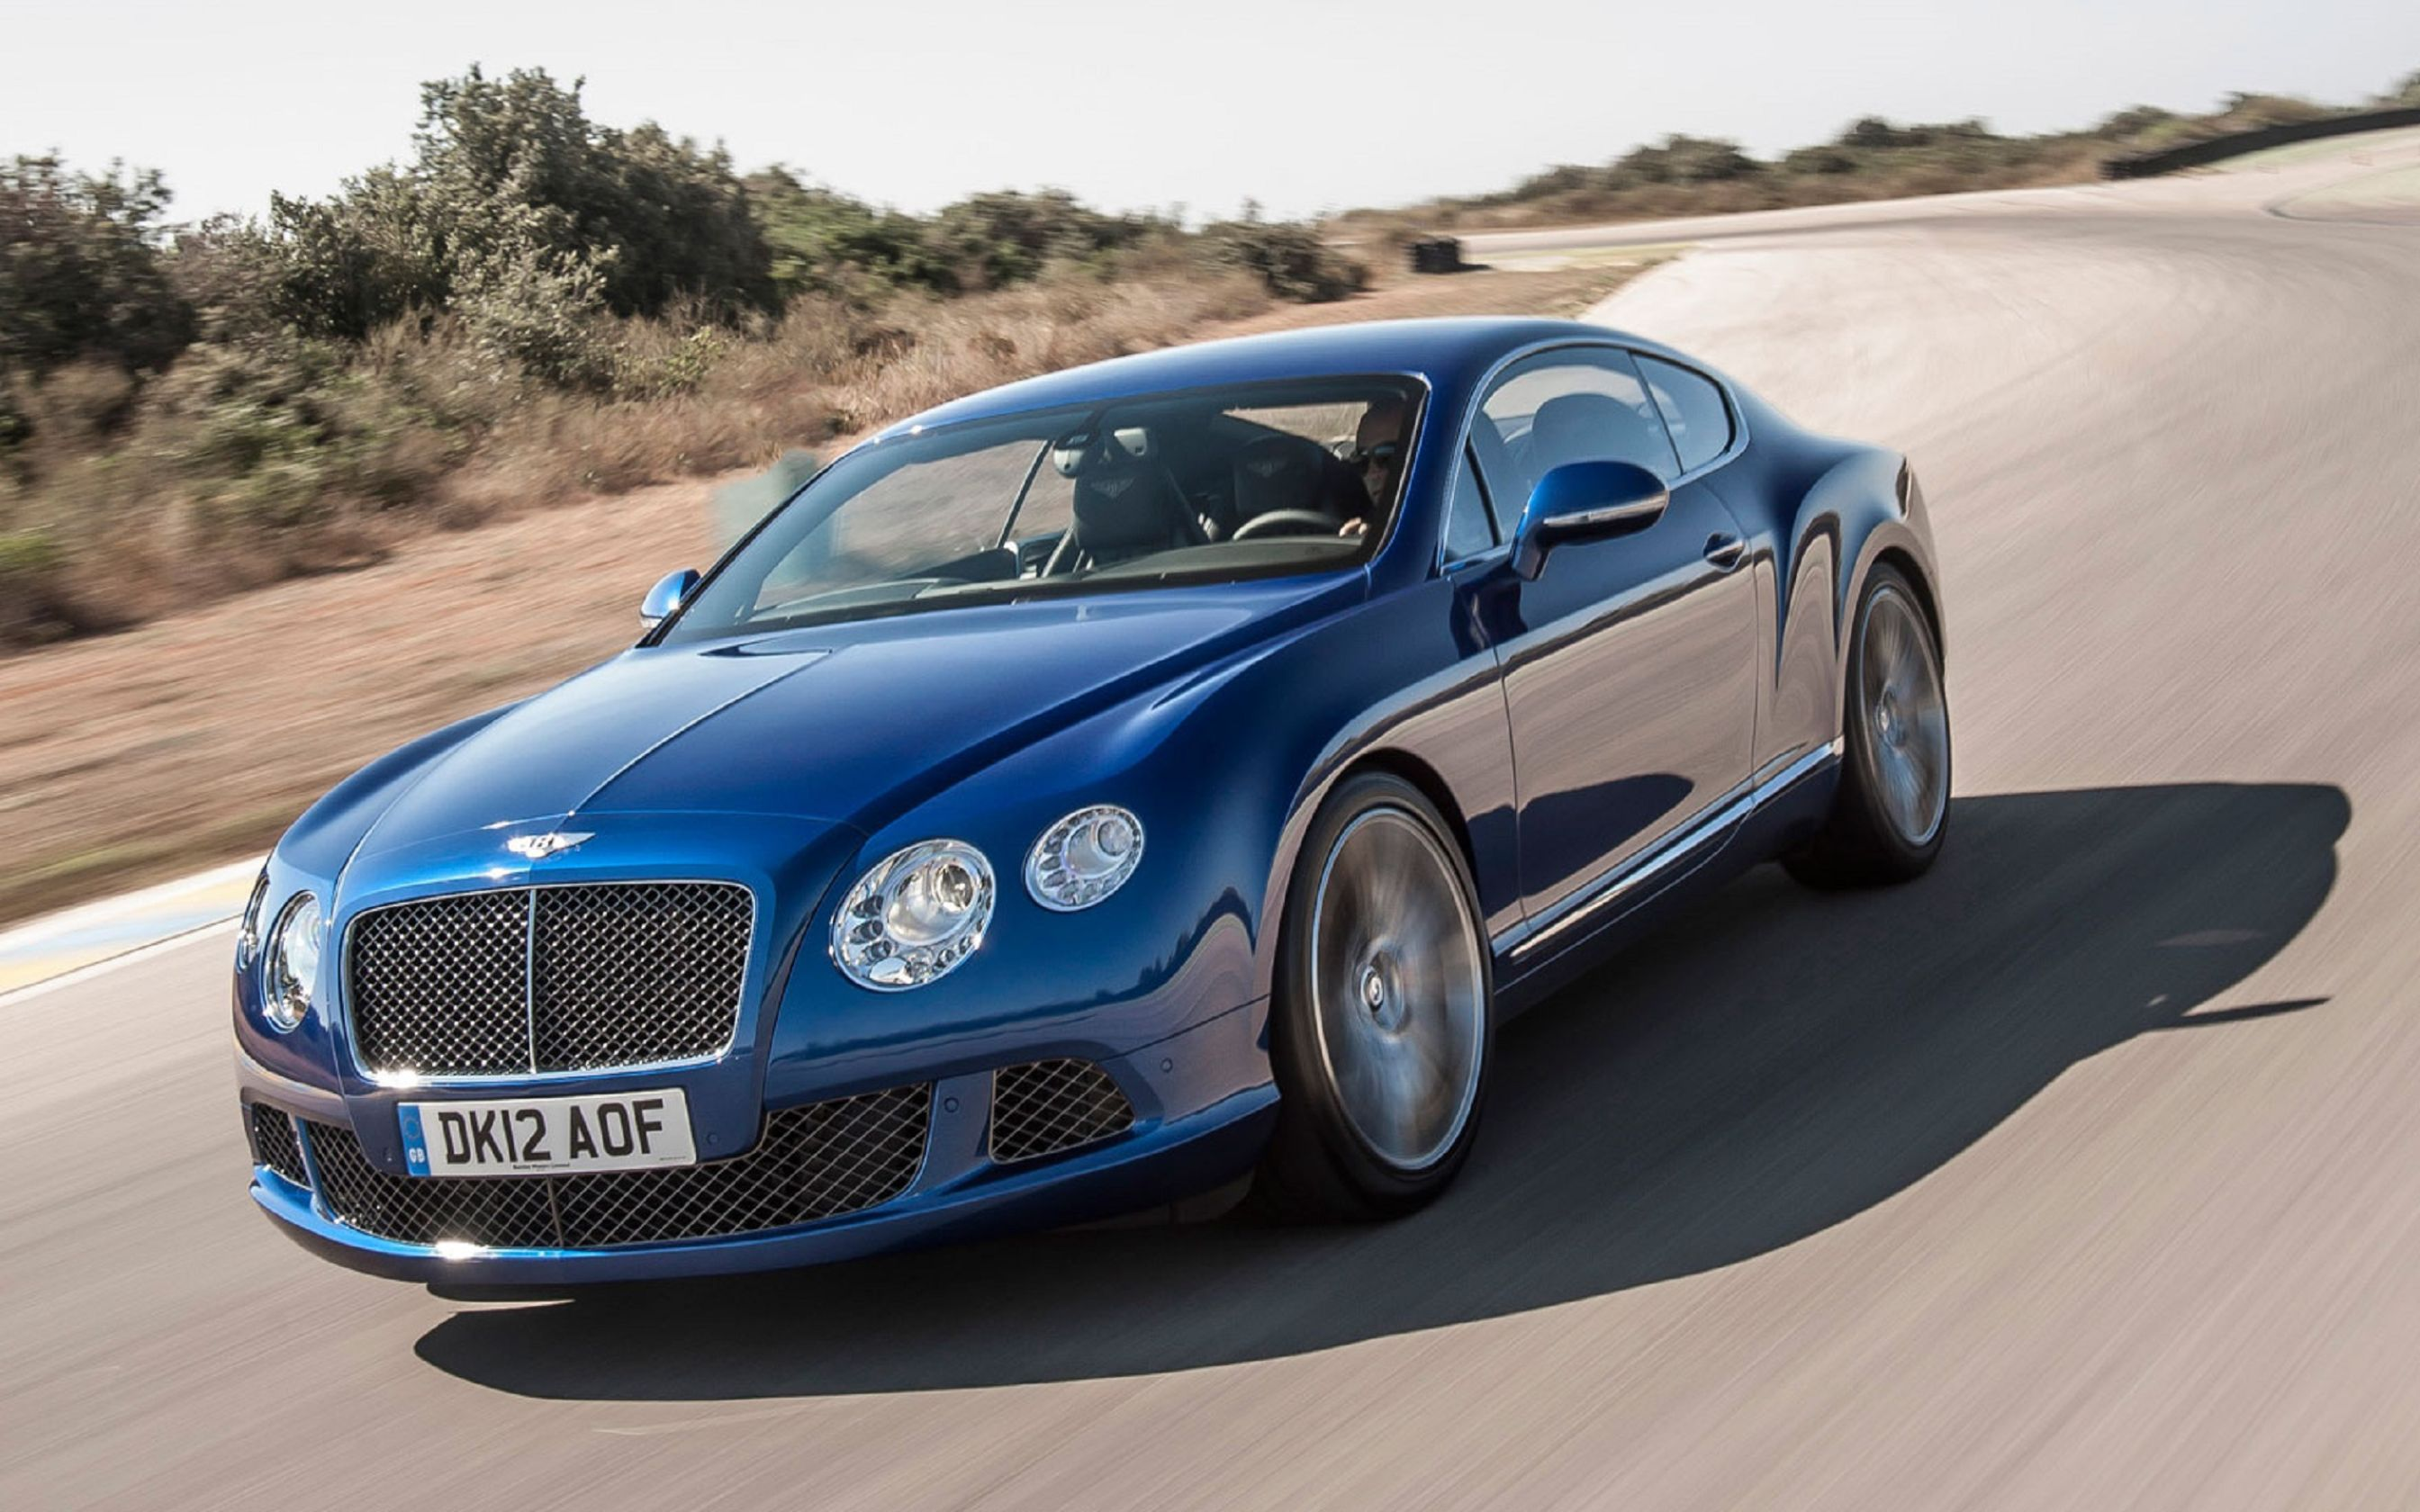 Download free HD 2015 Bentley Continental GT V8 S Blue Color  Wallpaper, image